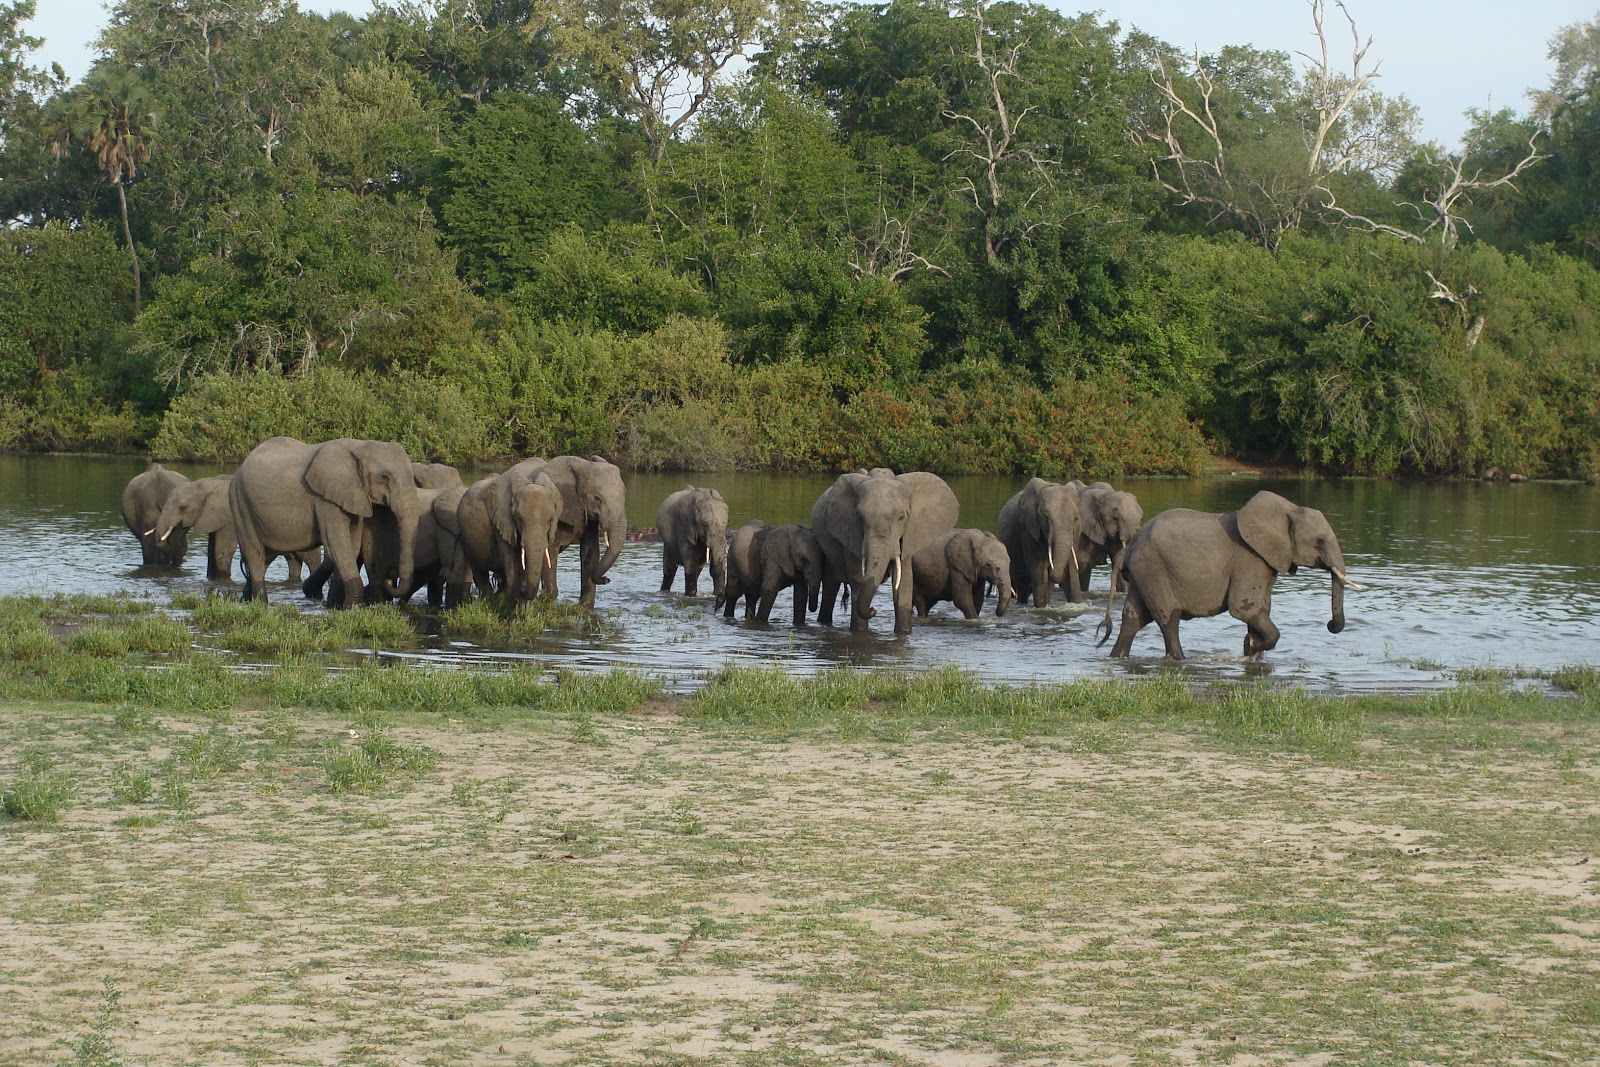 Elephants in the river